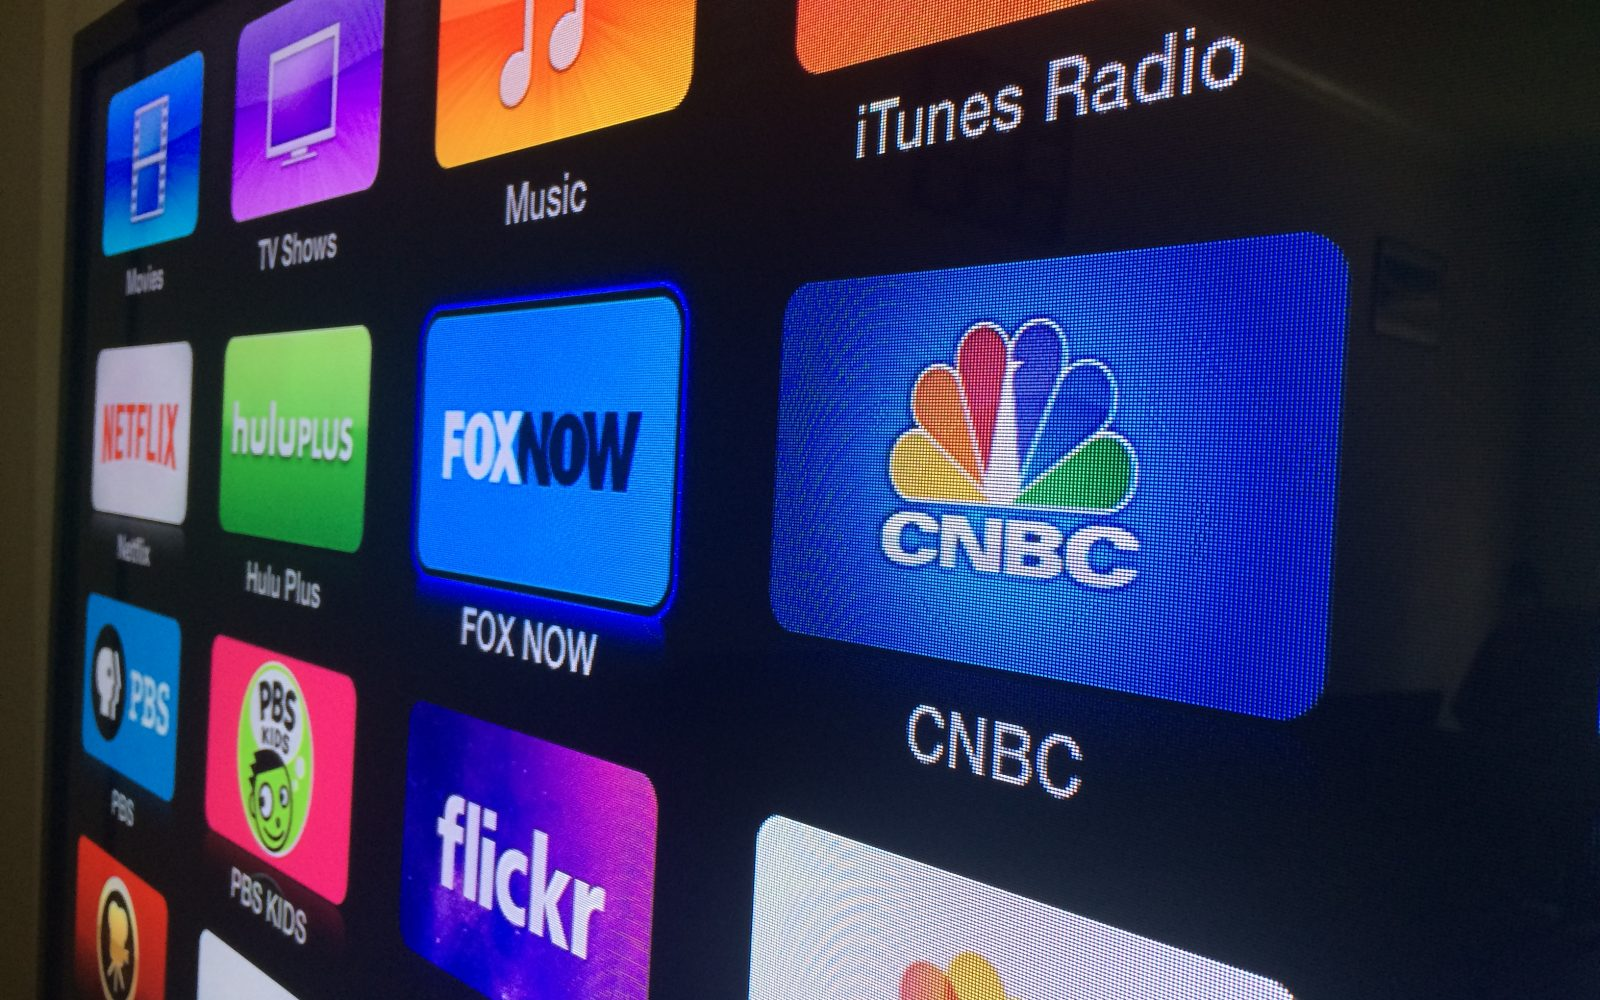 Apple TV updated with FOX NOW, CNBC channels - 9to5Mac